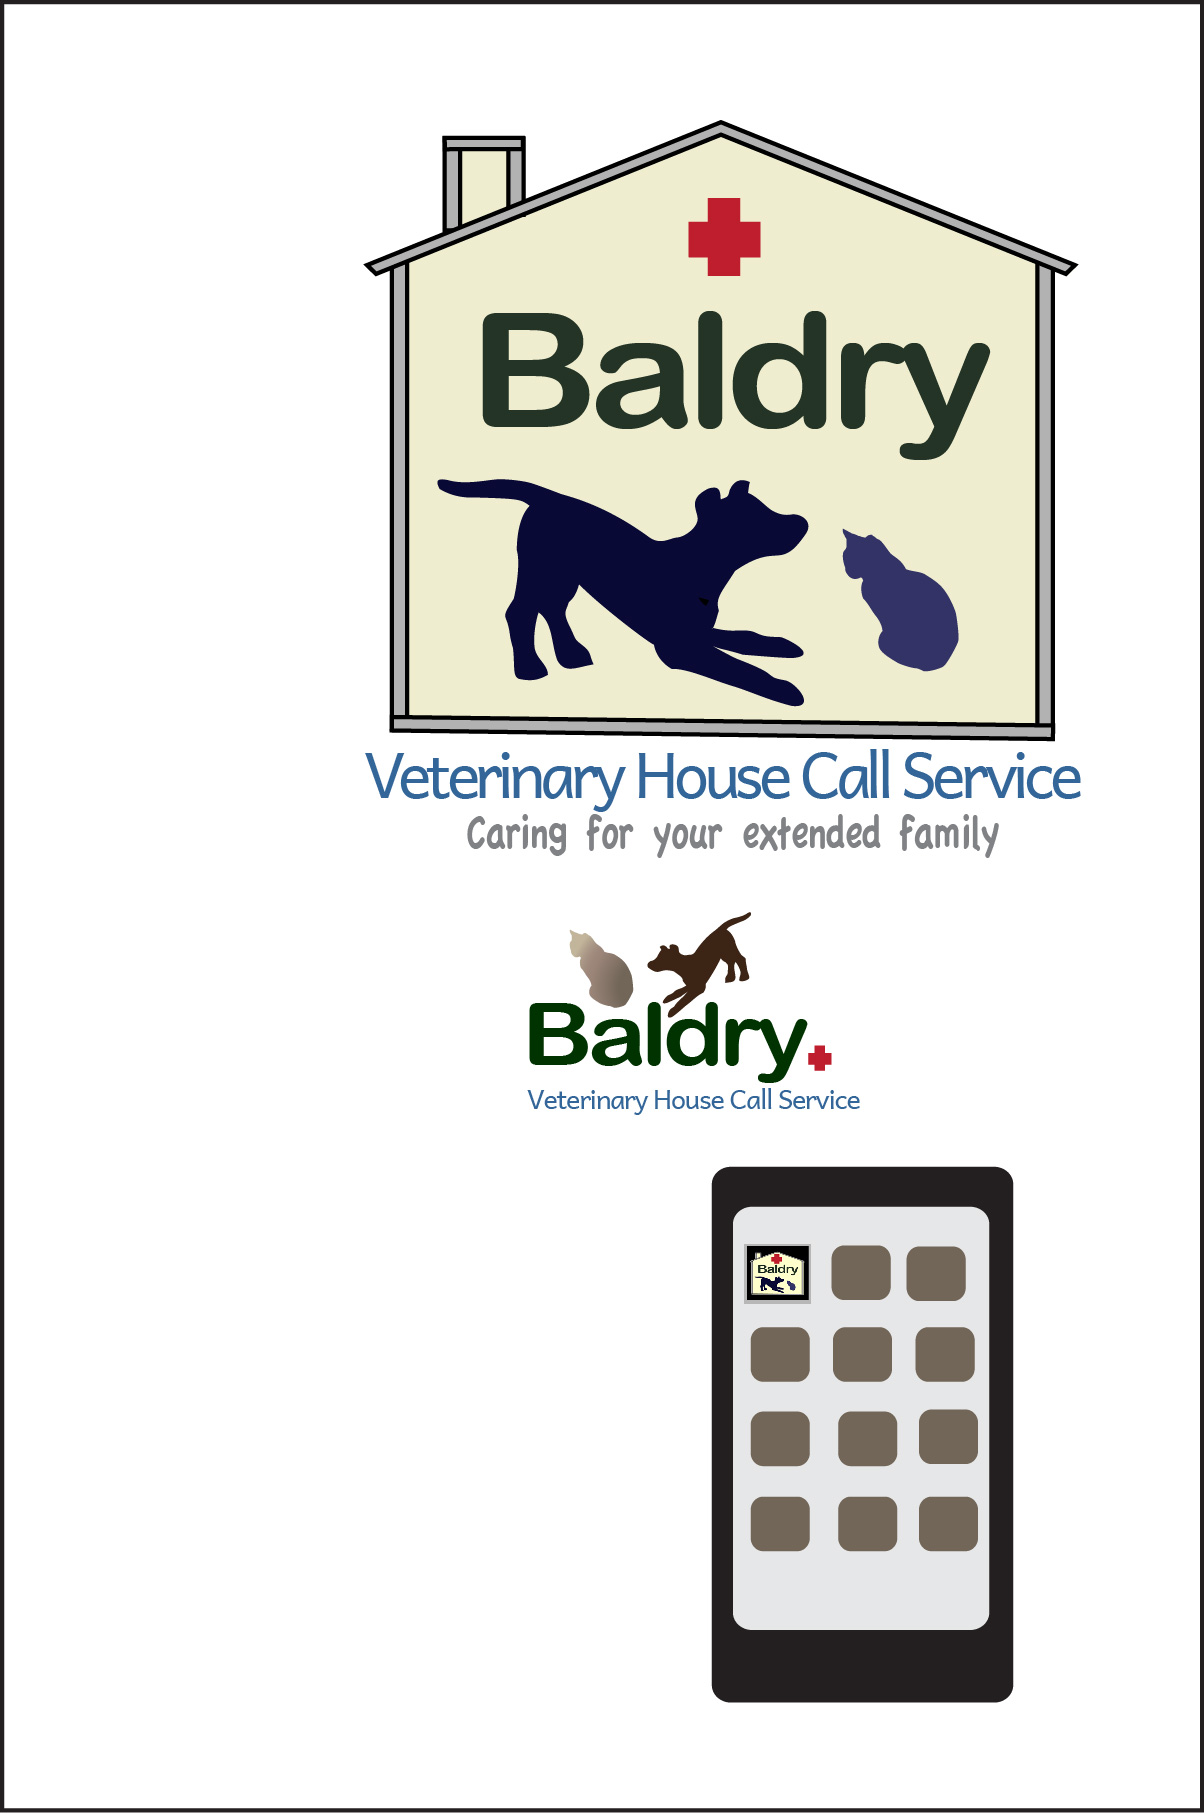 Logo Design by Nancy Grant - Entry No. 89 in the Logo Design Contest Captivating Logo Design for Baldry Veterinary House Call Service.